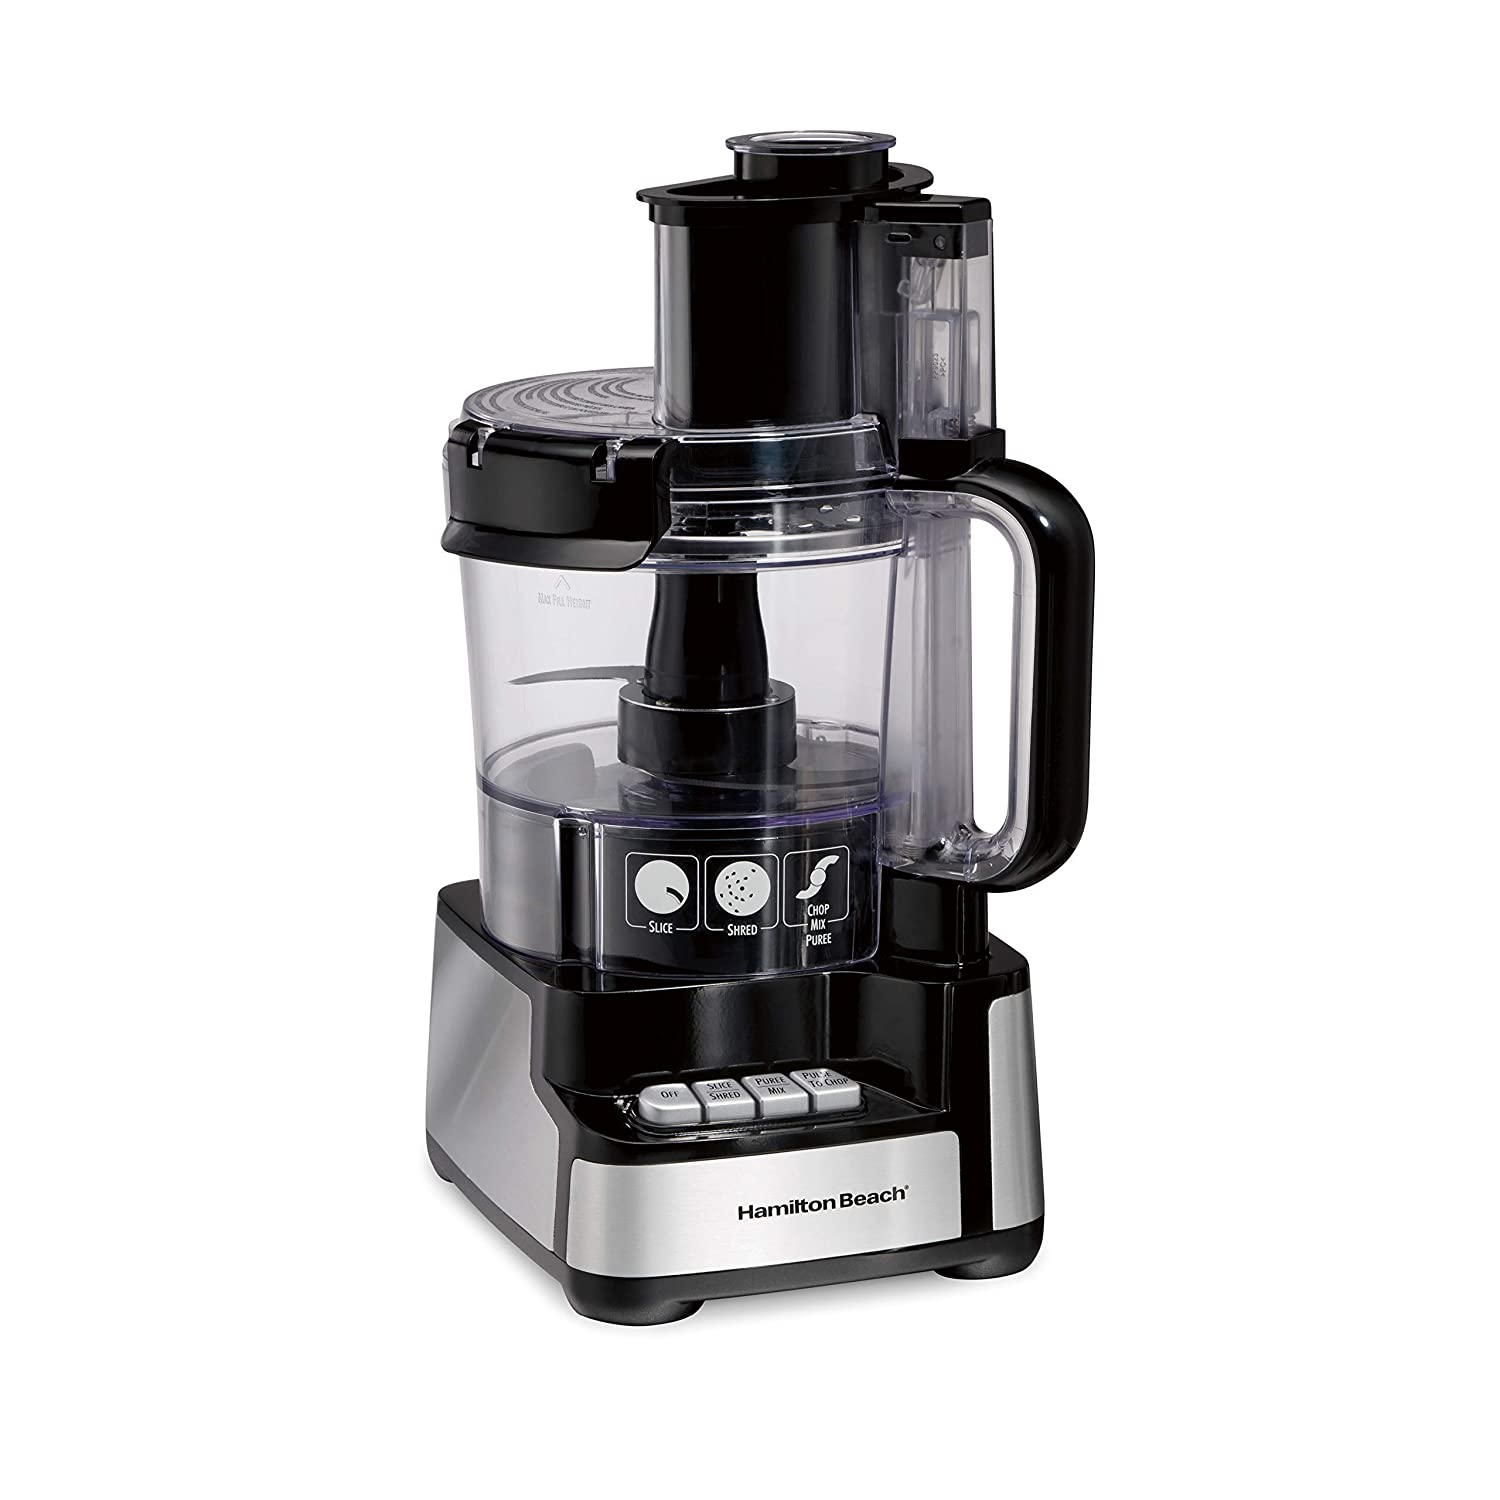 Hamilton Beach 70725A 12-Cup Stack & Snap Food Processor and Vegetable Chopper, Black (Renewed)